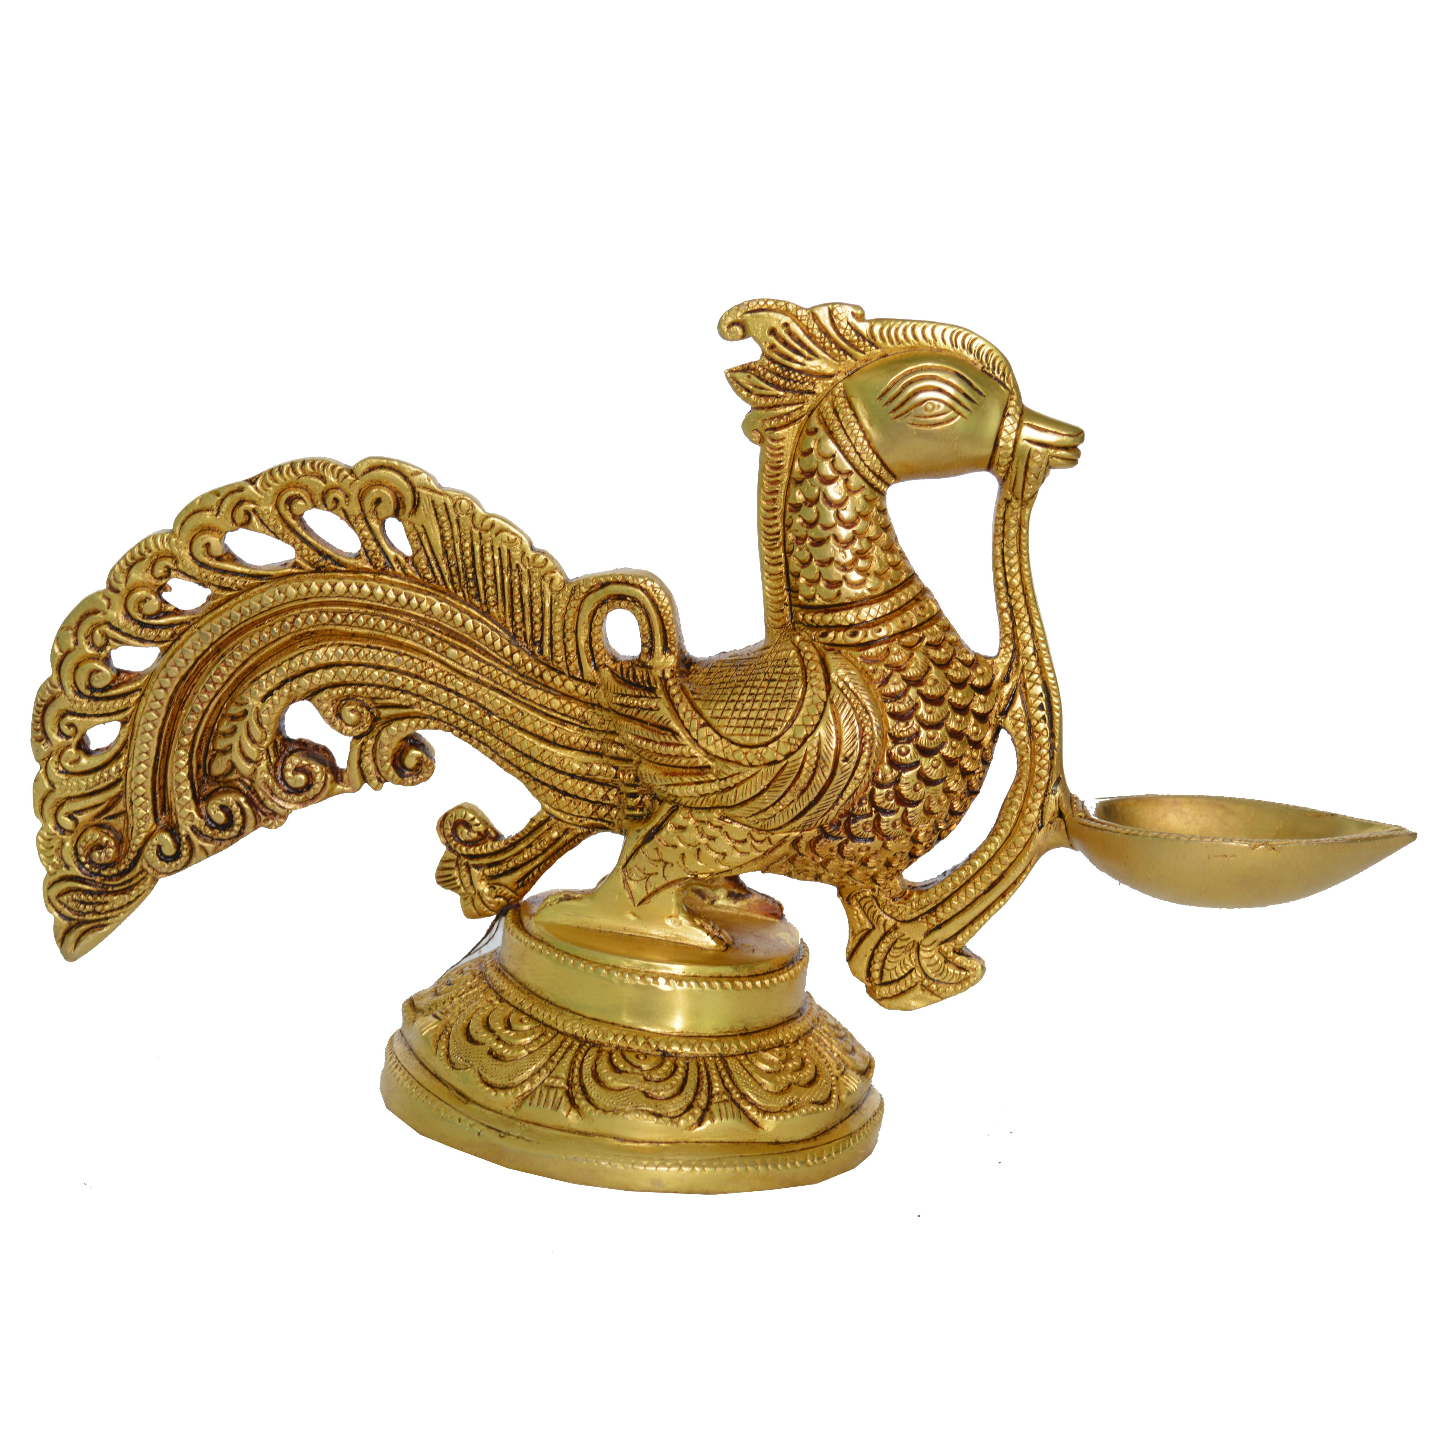 Designer Oil Lamp of Peacock with Superfine Carving - 6.4 Inch (BS1158 A)